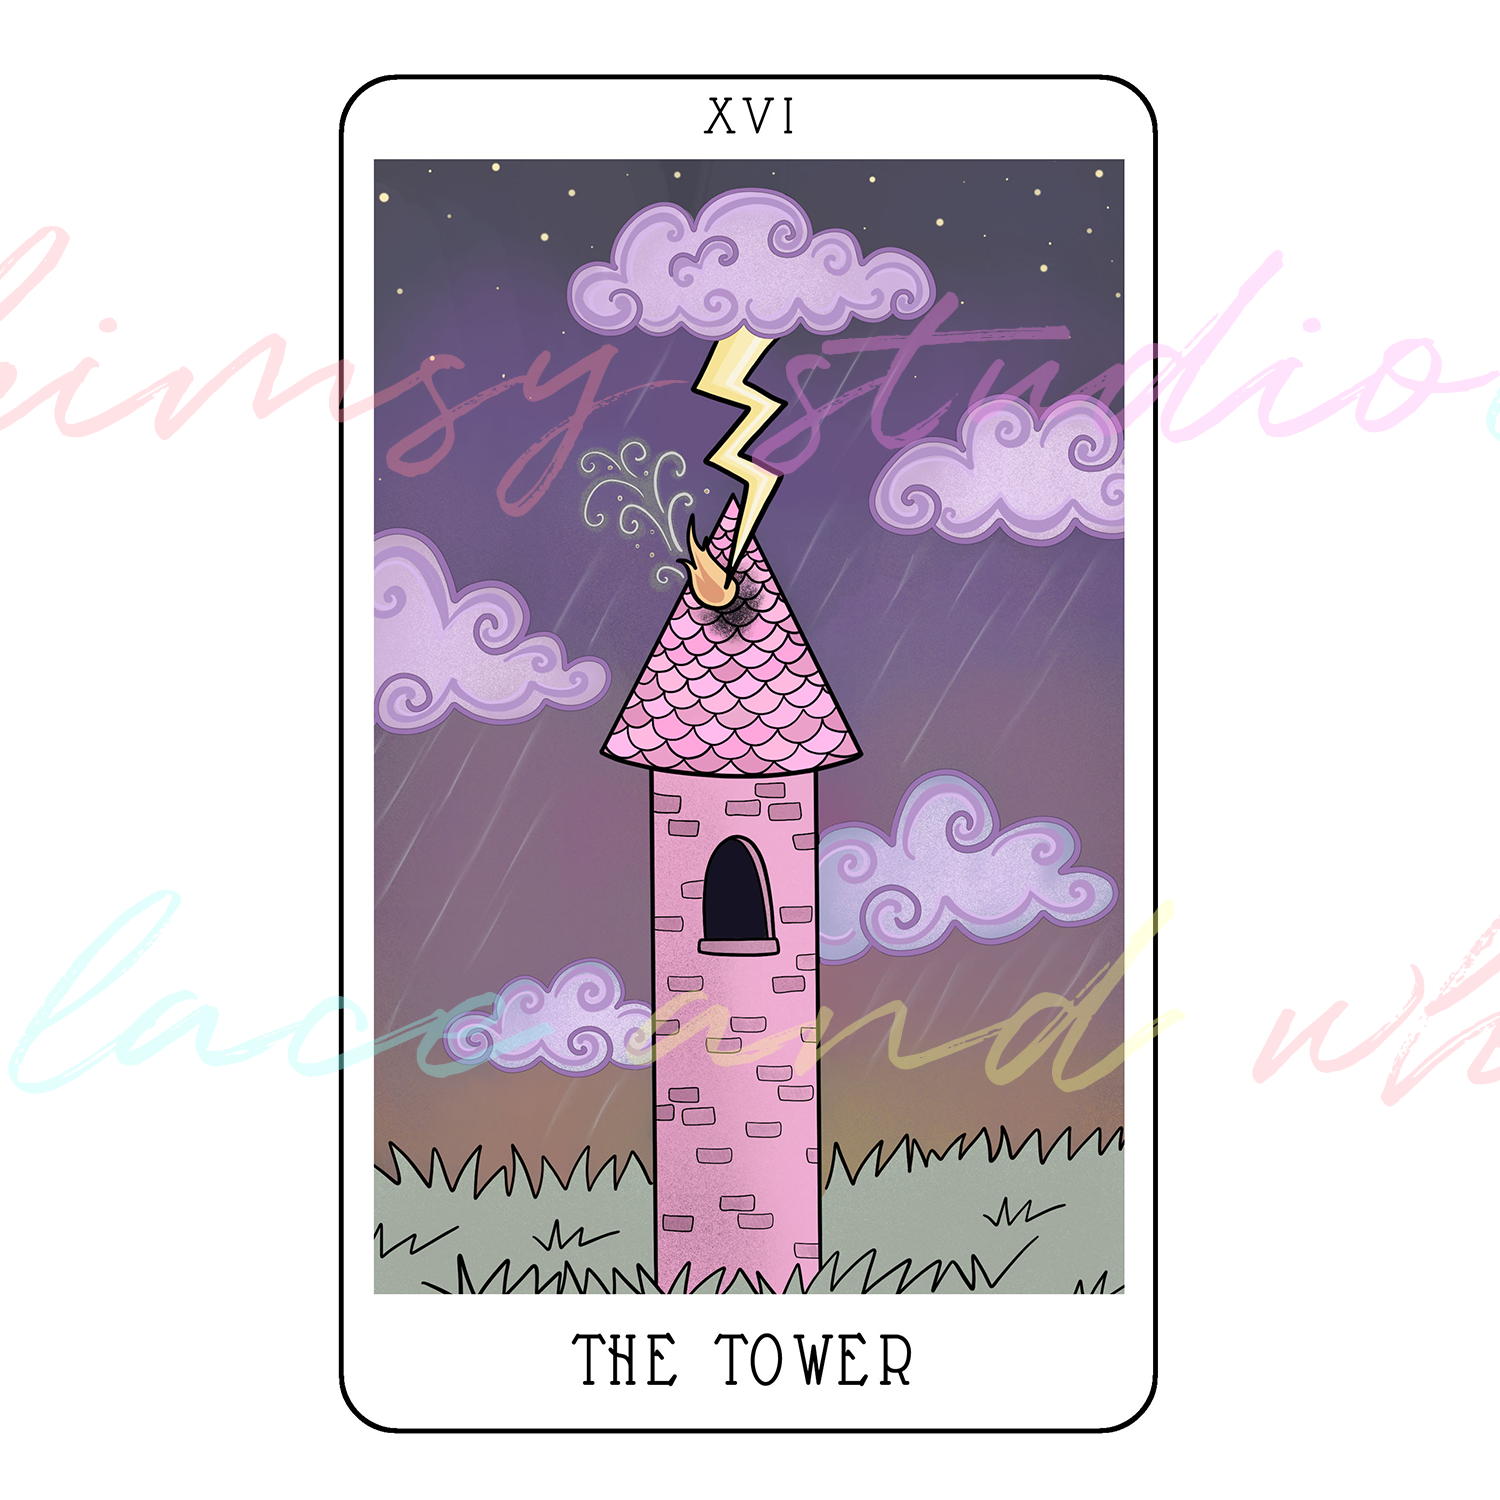 tarot-cards-illustration-series-2018-laceandwhimsy-kathy-d-clark-The-Tower.png